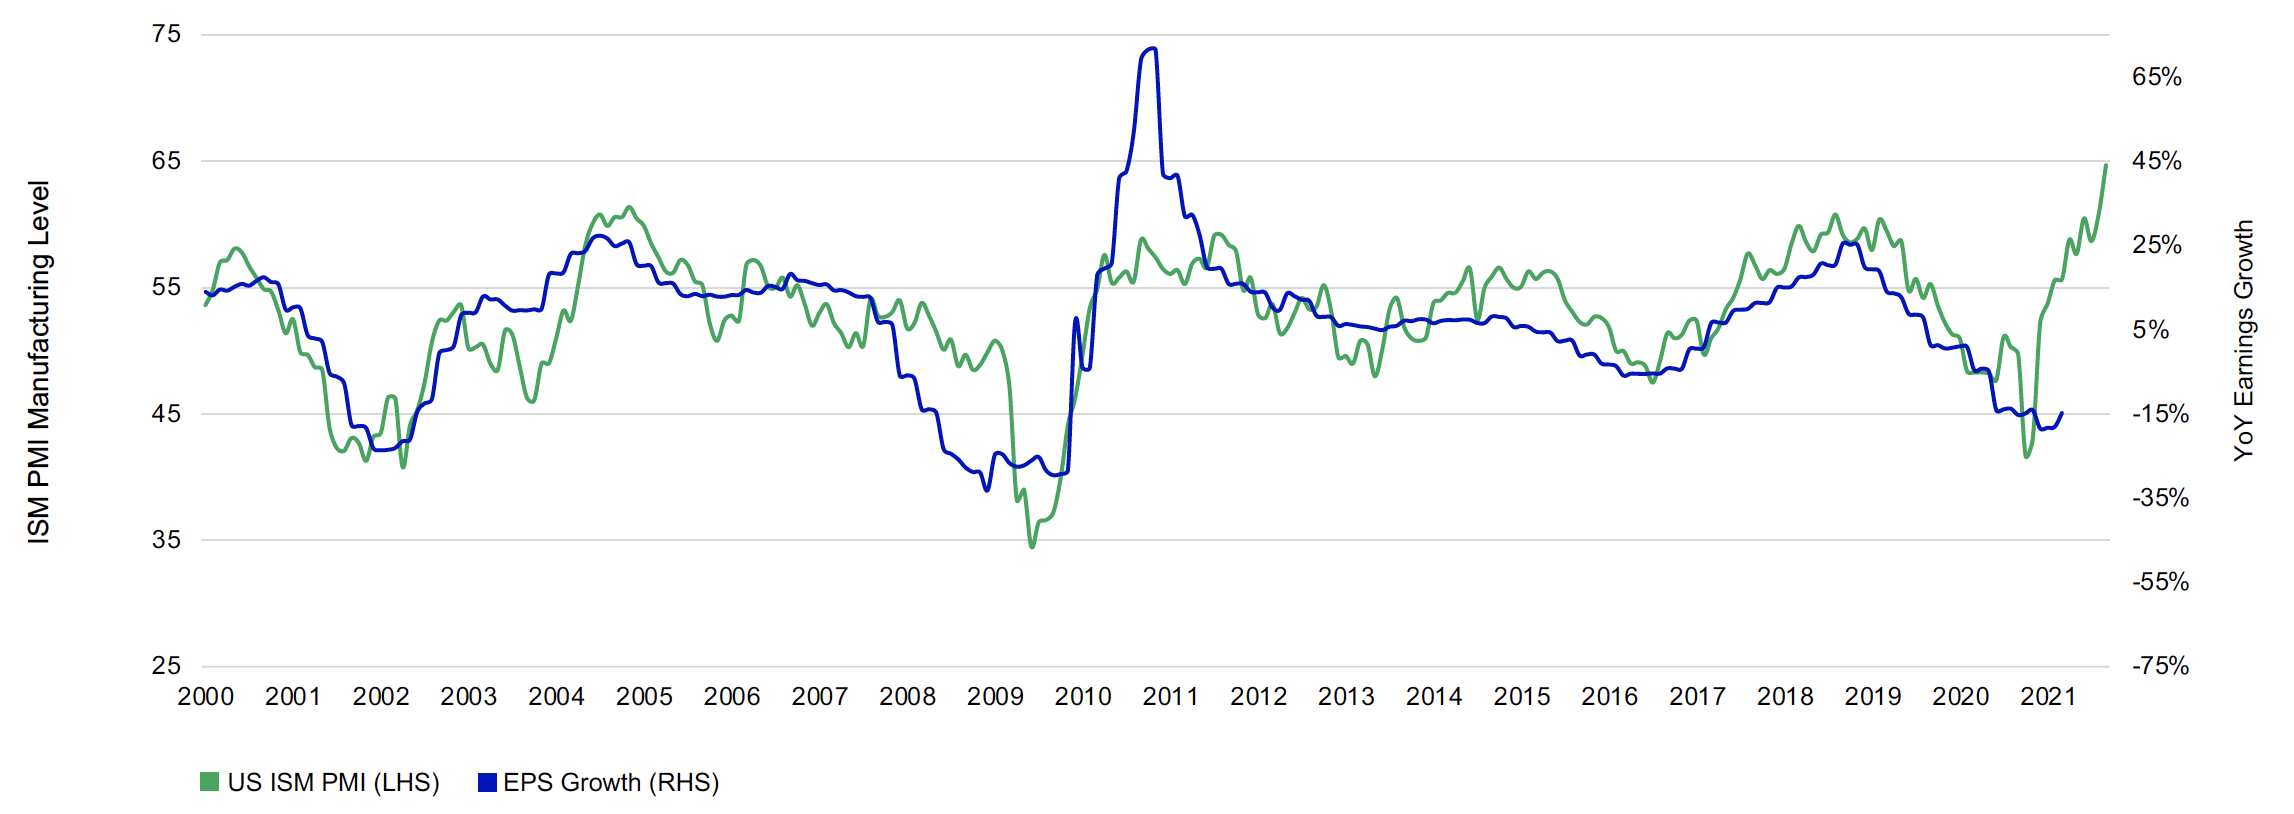 This chart illustrates that earnings growth in the US has historically had a strong correlation to the ISM Purchasing Managers Index with a 6-month lag. The data starts at 2000 and ends at March 31, 2021. At current level of 64.7, the PMI would imply strong earnings growth in 2021.